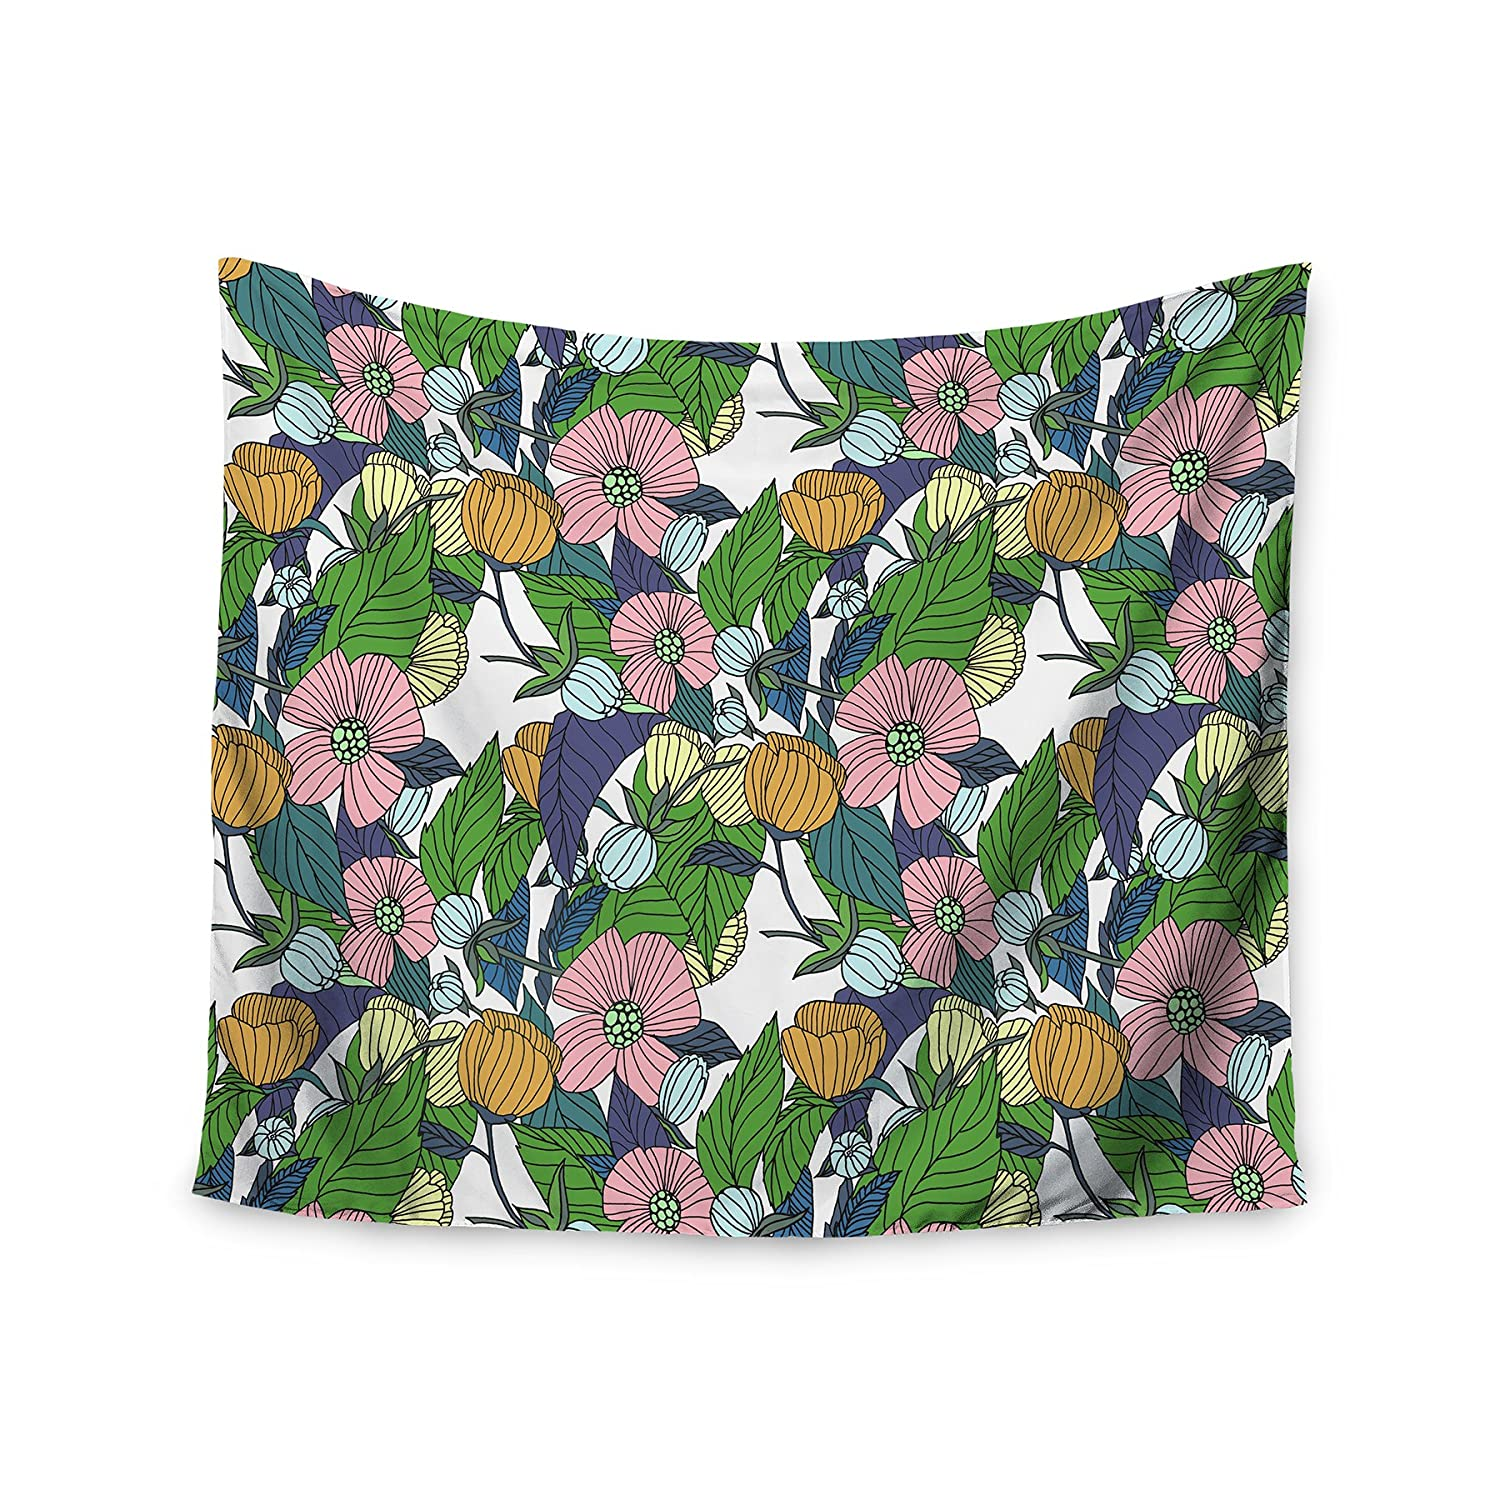 Home Kitchen Kess Inhouse Catherine Holcombe Spring Foliage Floral Pastels Wall Tapestry 68 X 80 Home Décor